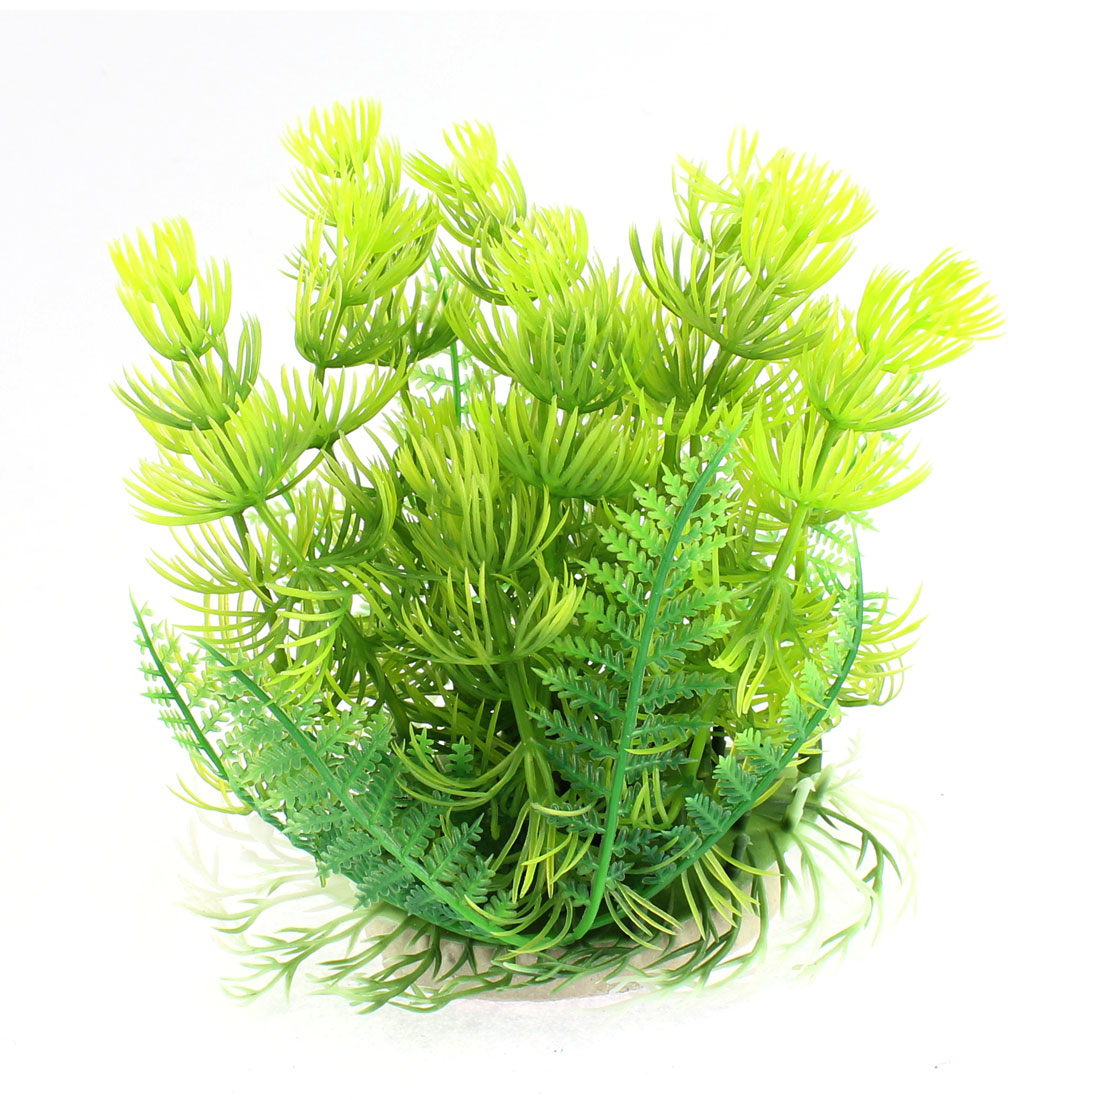 Fish Tank Fishbowl Aquarium Eemulational Plant Landscape Grass Green